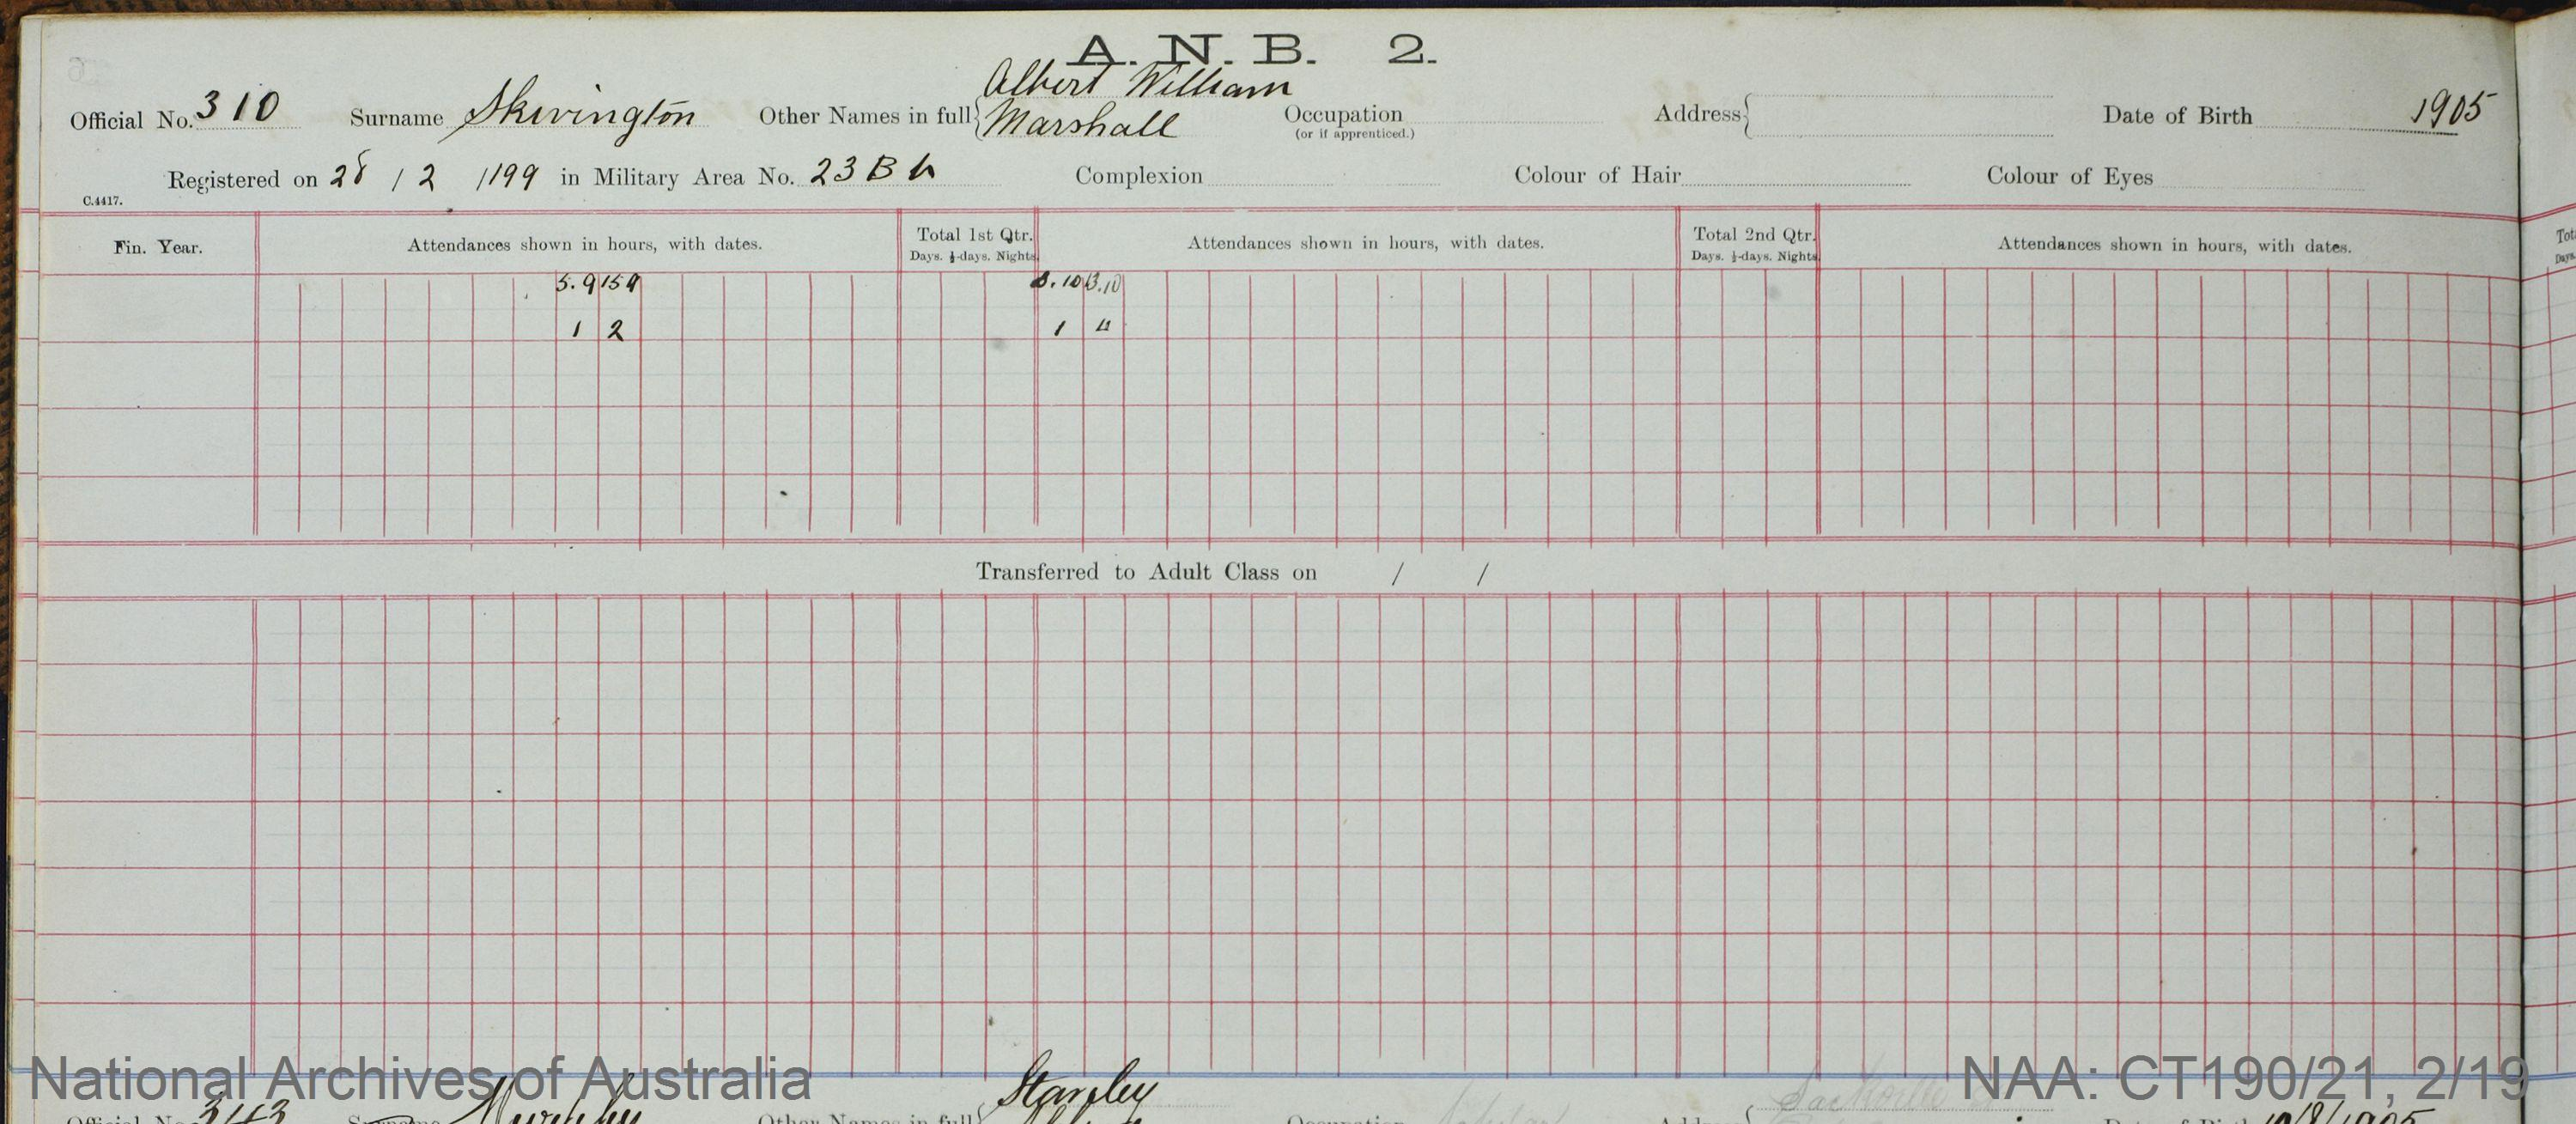 SURNAME - SKIVINGTON;  GIVEN NAME(S) - Albert William Marsall;  OFFICIAL NUMBER - 310;  DATE OF BIRTH - 1905;  PLACE OF BIRTH - [Unknown];  NEXT OF KIN - [Unknown] ;  SERVICE/STATION - Port Fairy;  REGISTRATION DATE - 28 February 1919